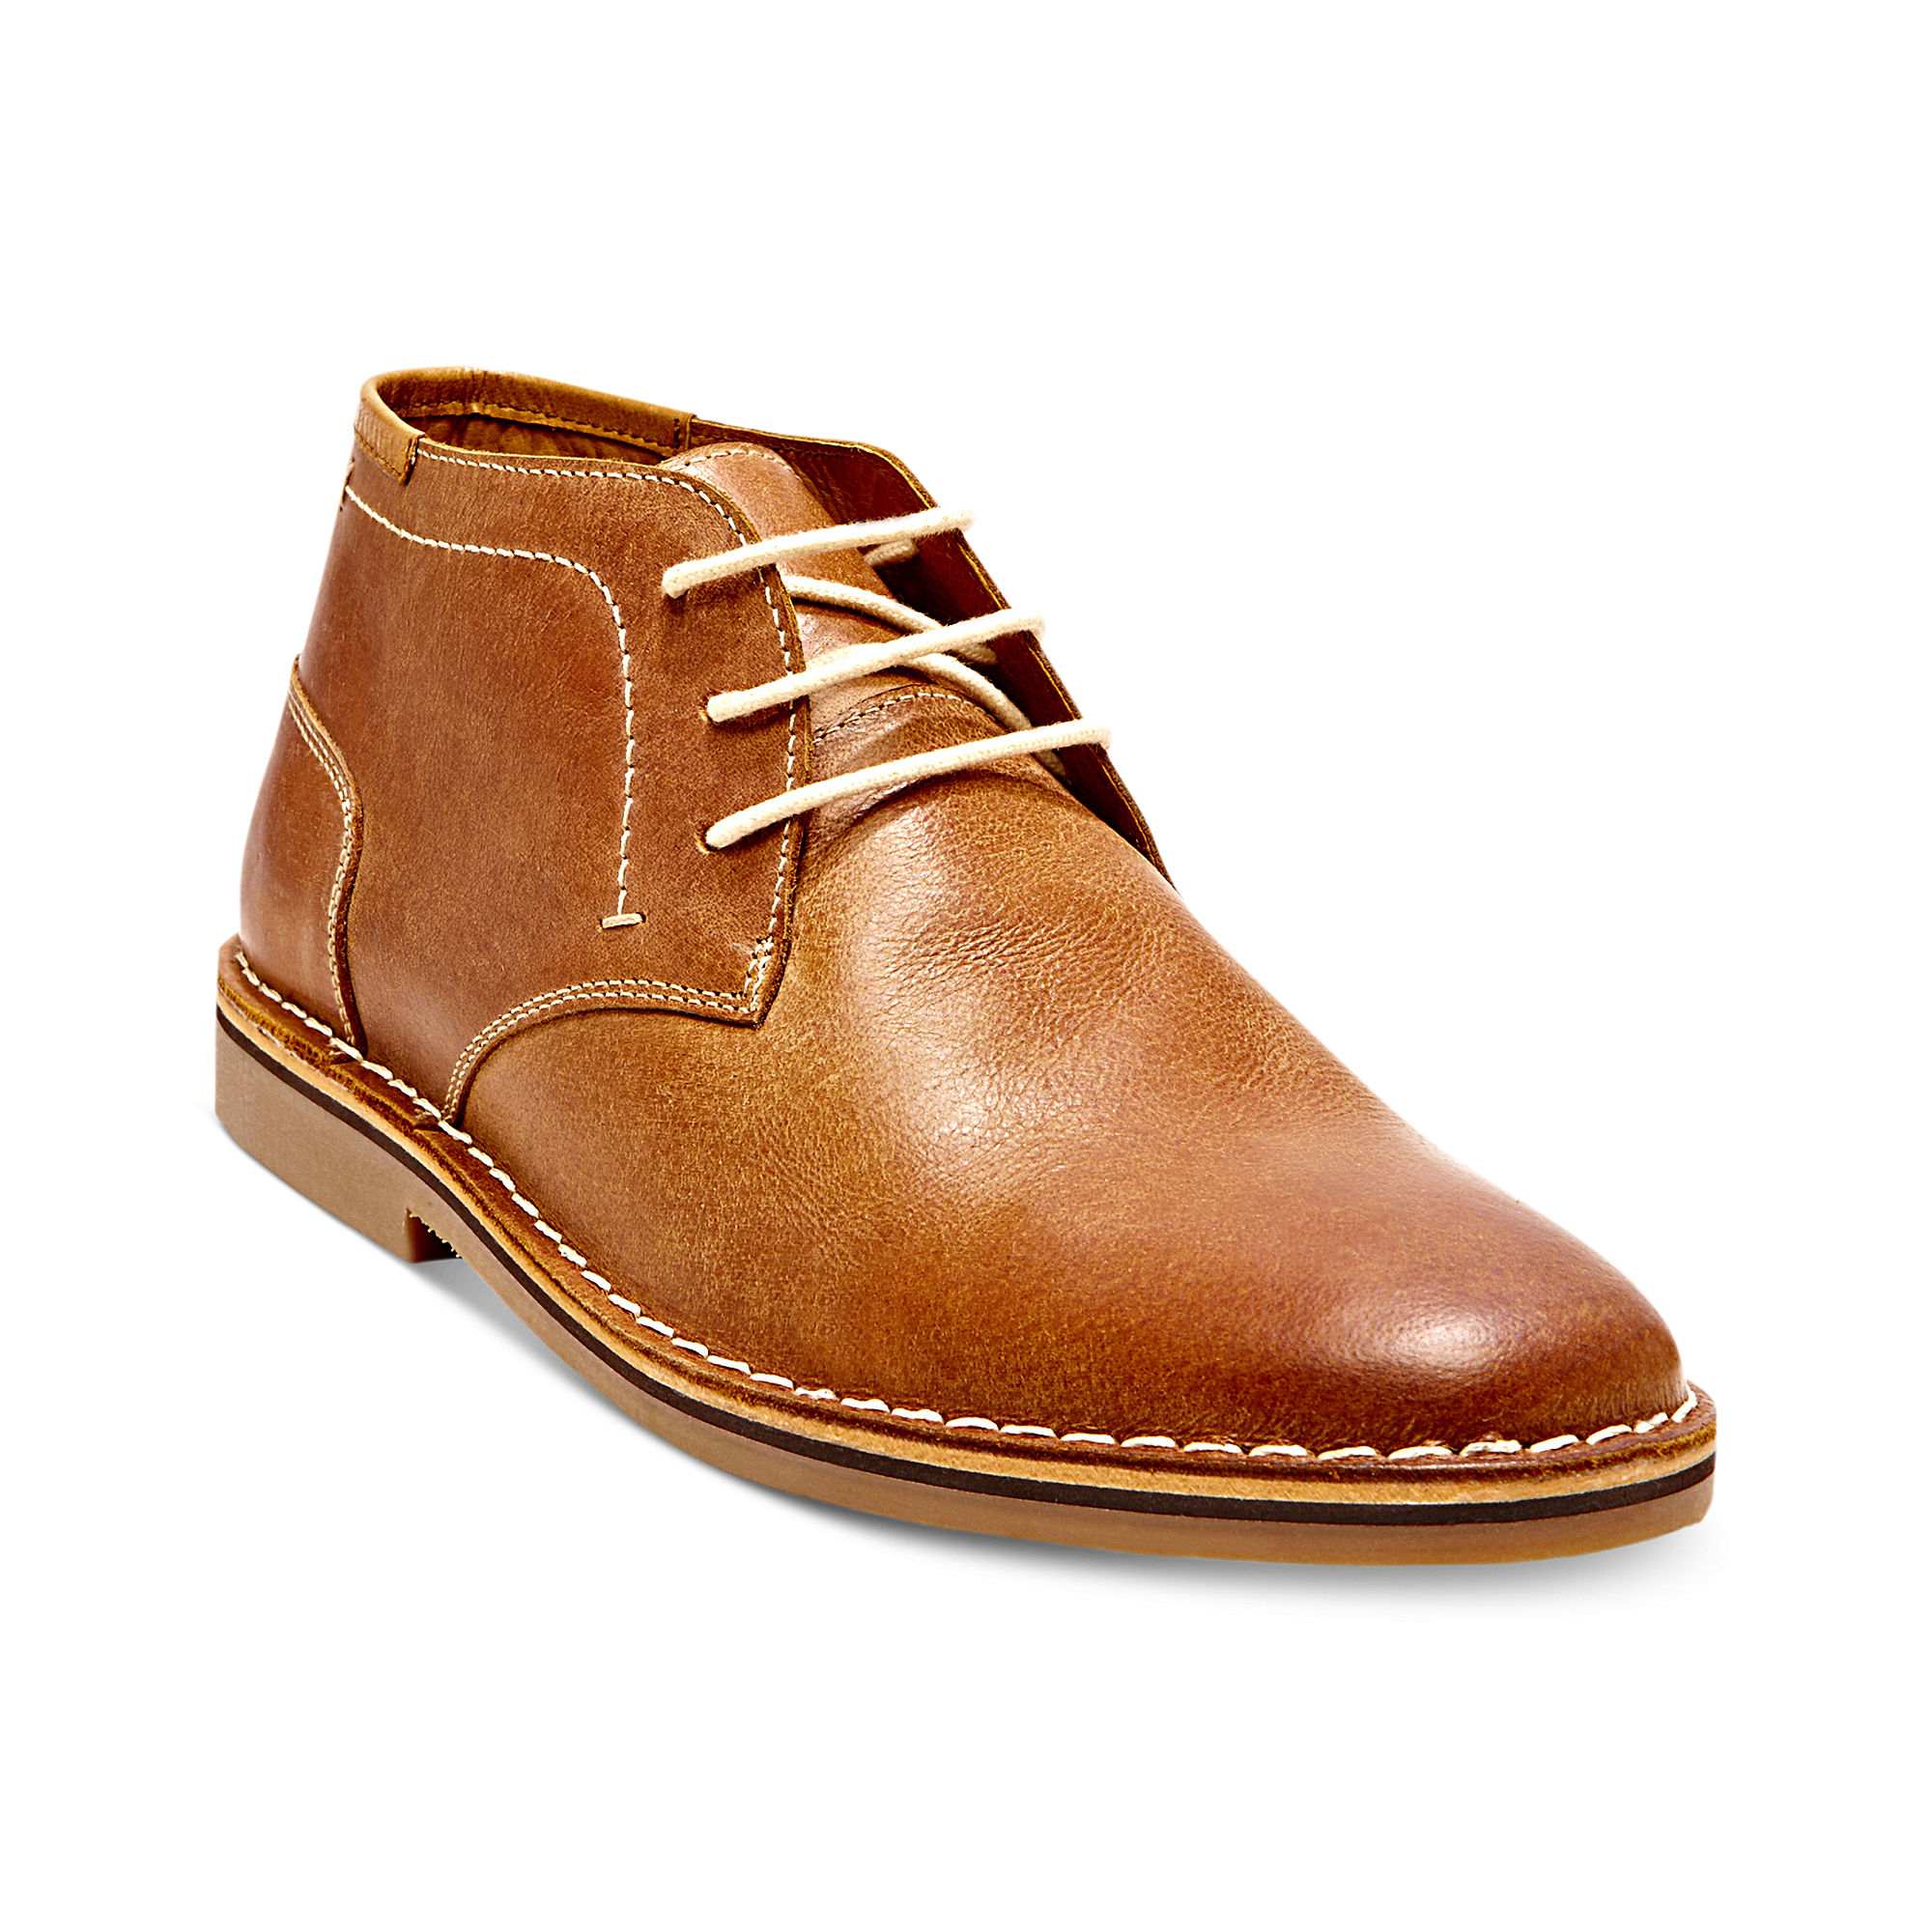 Steve Madden Brown Shoe